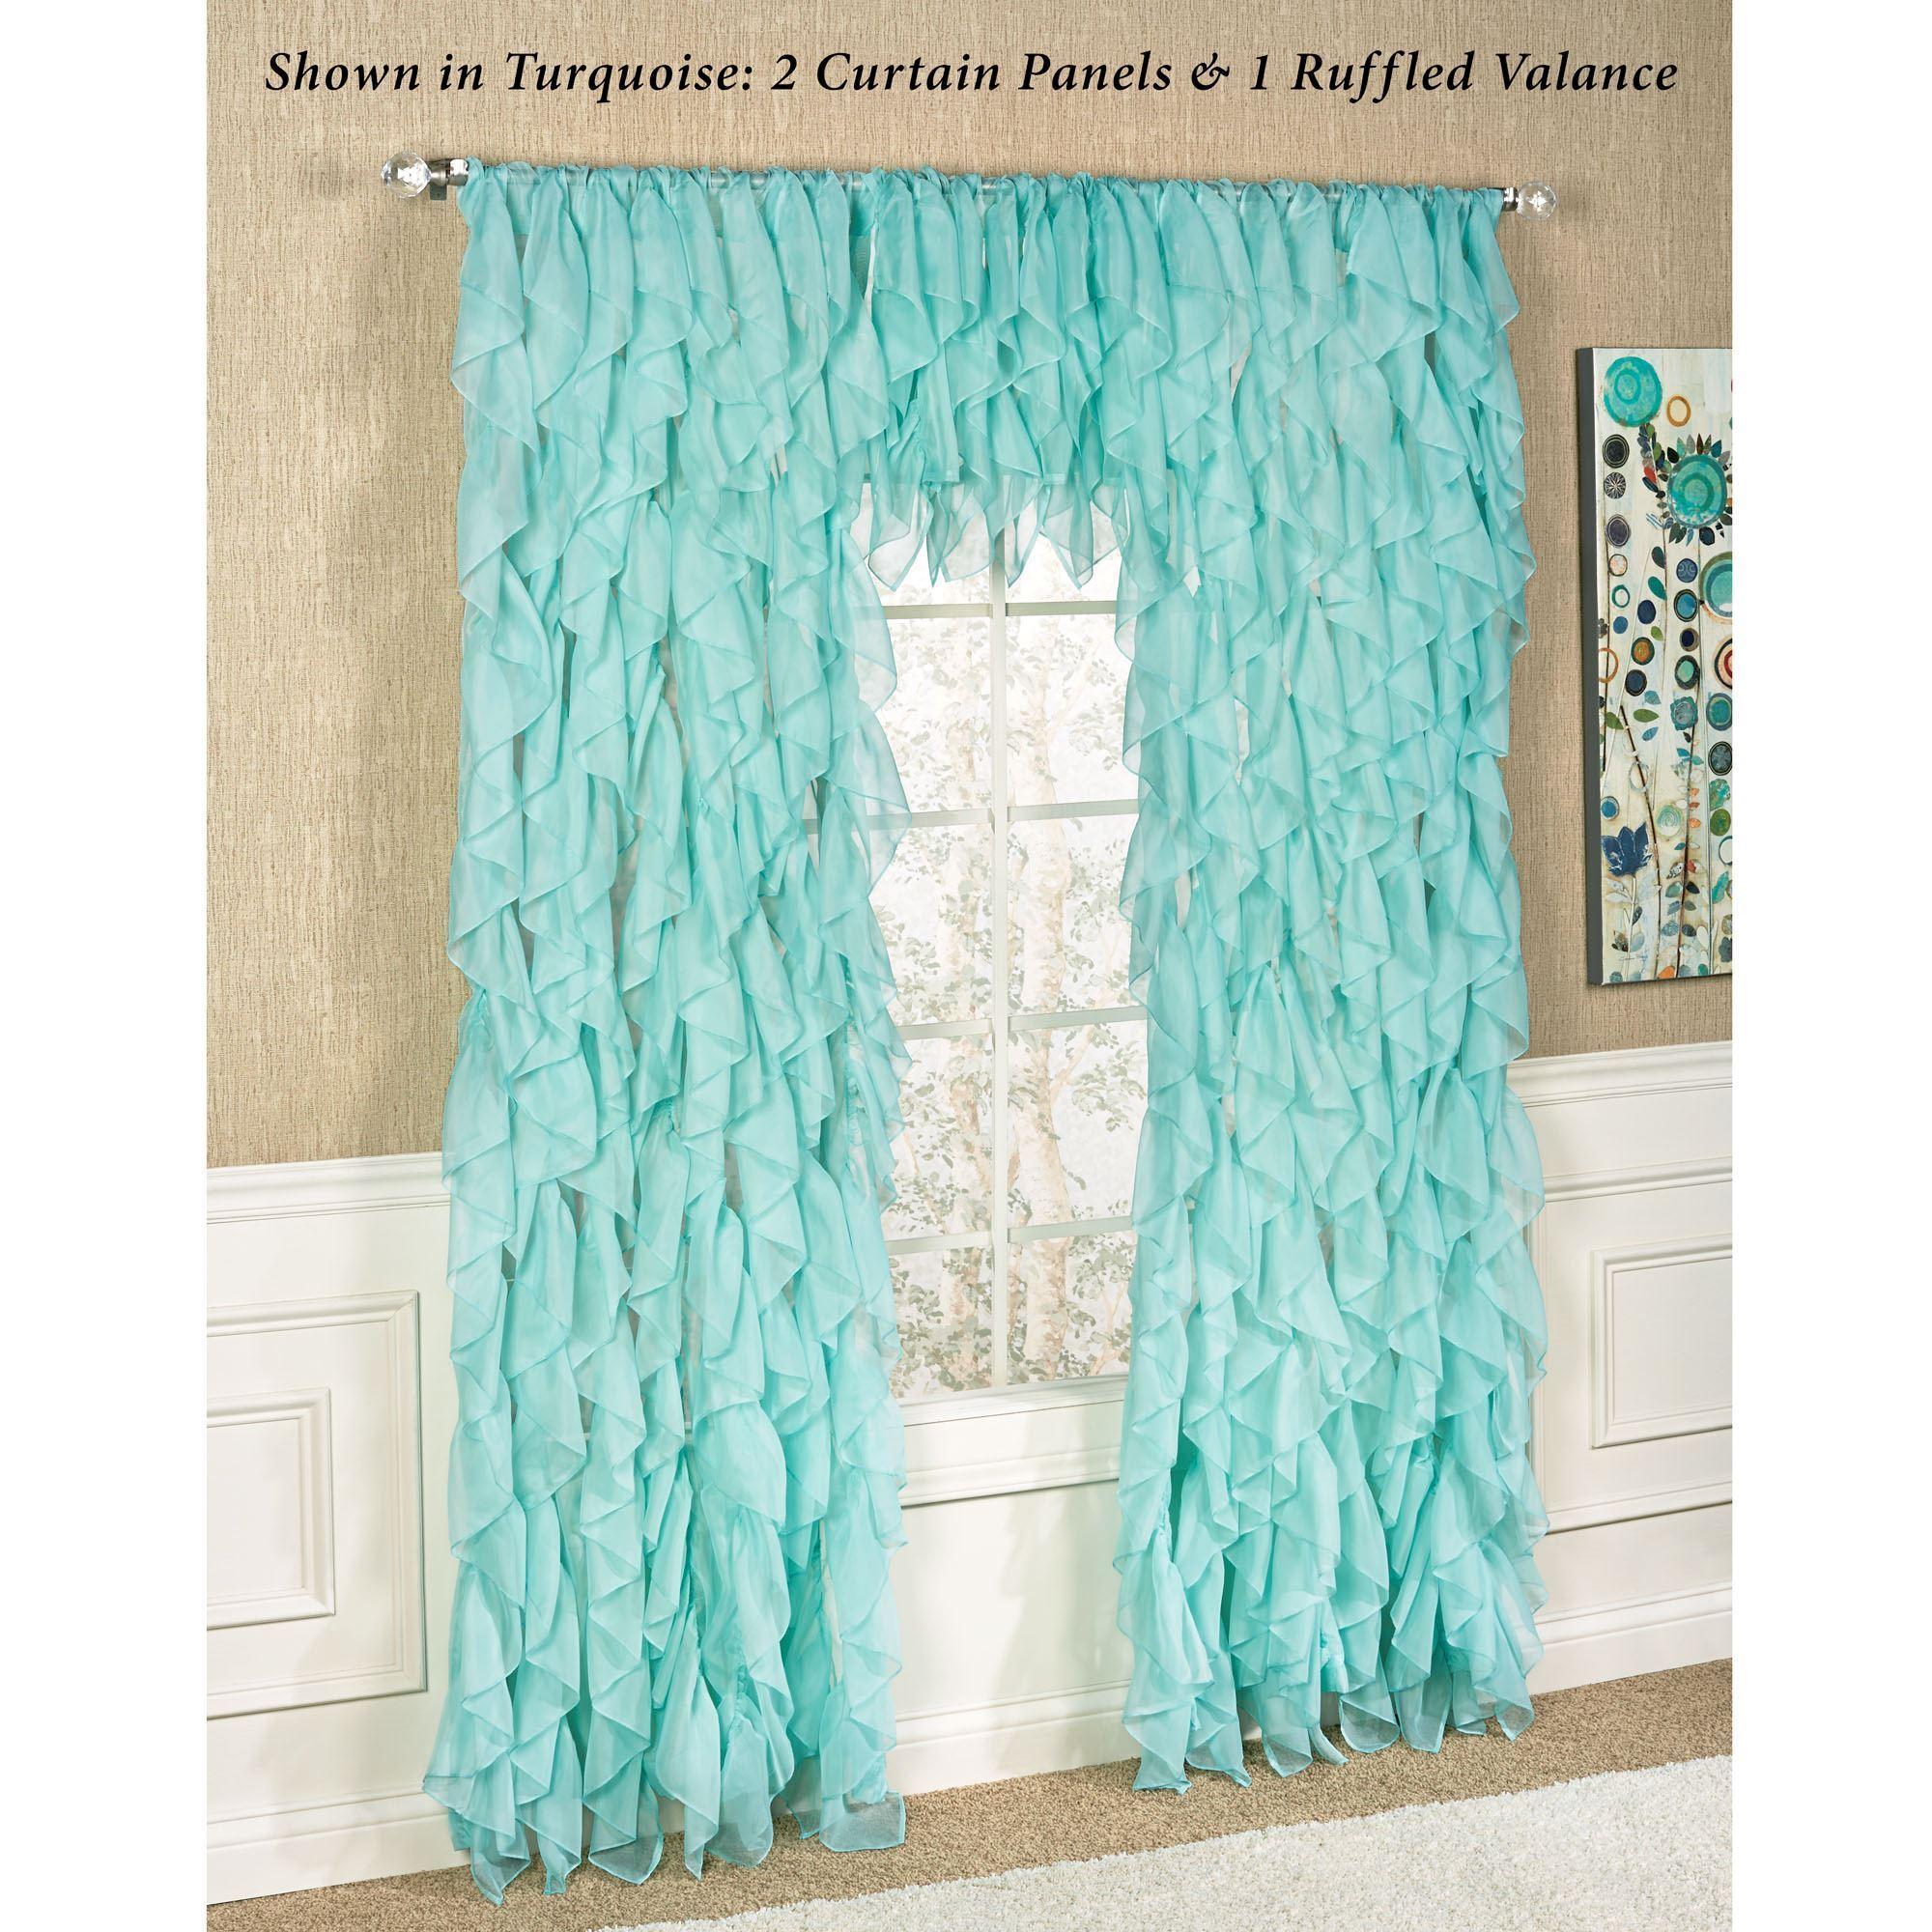 curtain american style sheer pleated item curtains window teal linen color rod pinch room solid home tulle imitation pocket from gauze living in